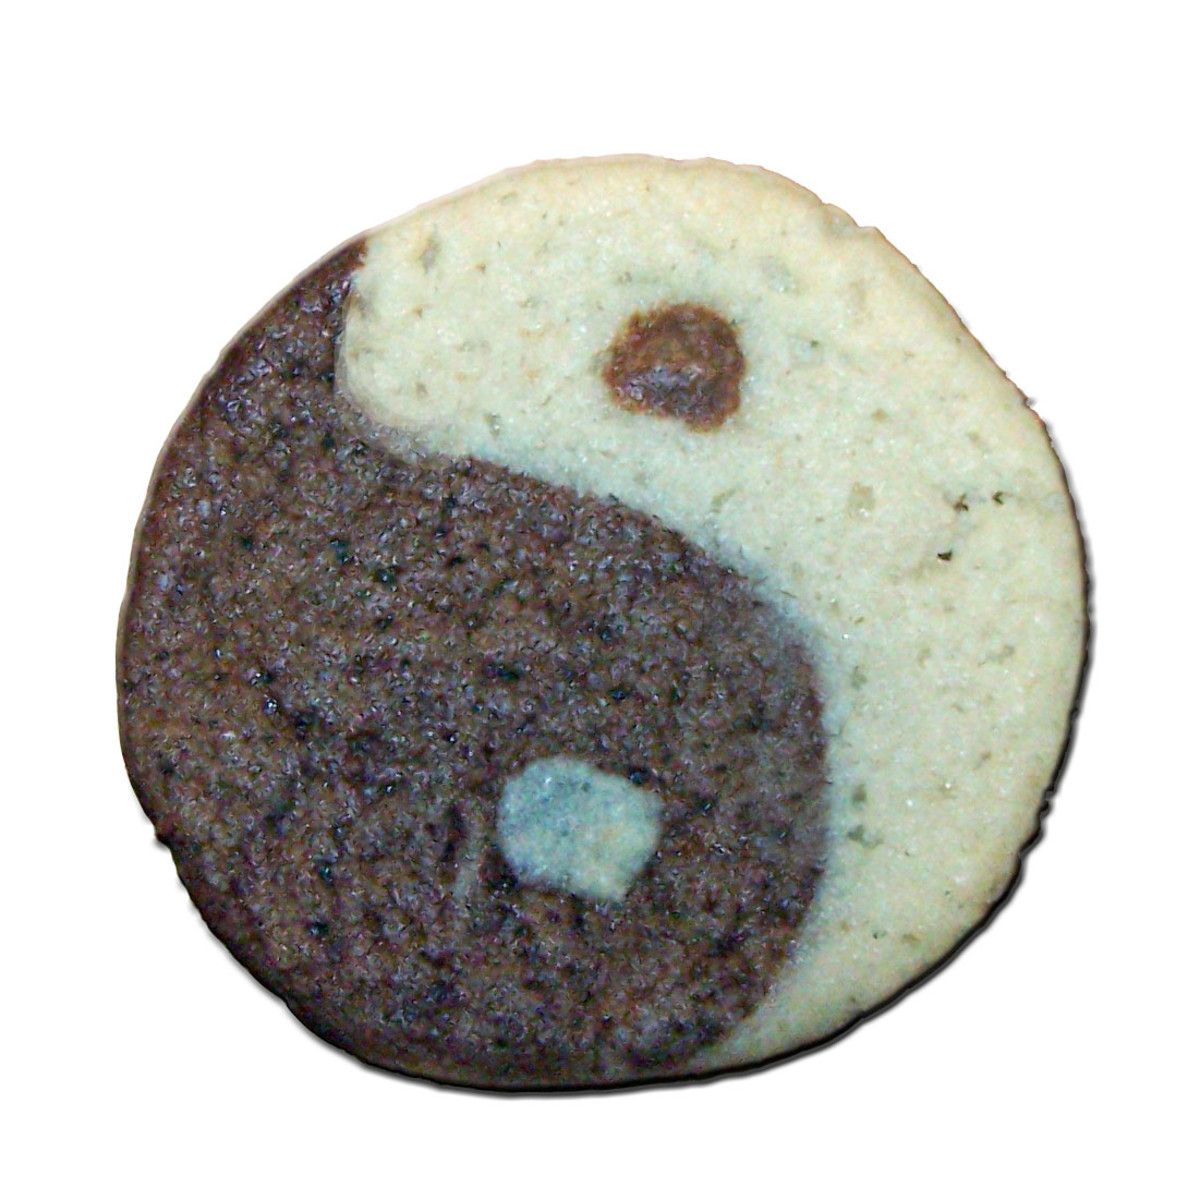 Equinox Yin/Yang Cookies for Balance